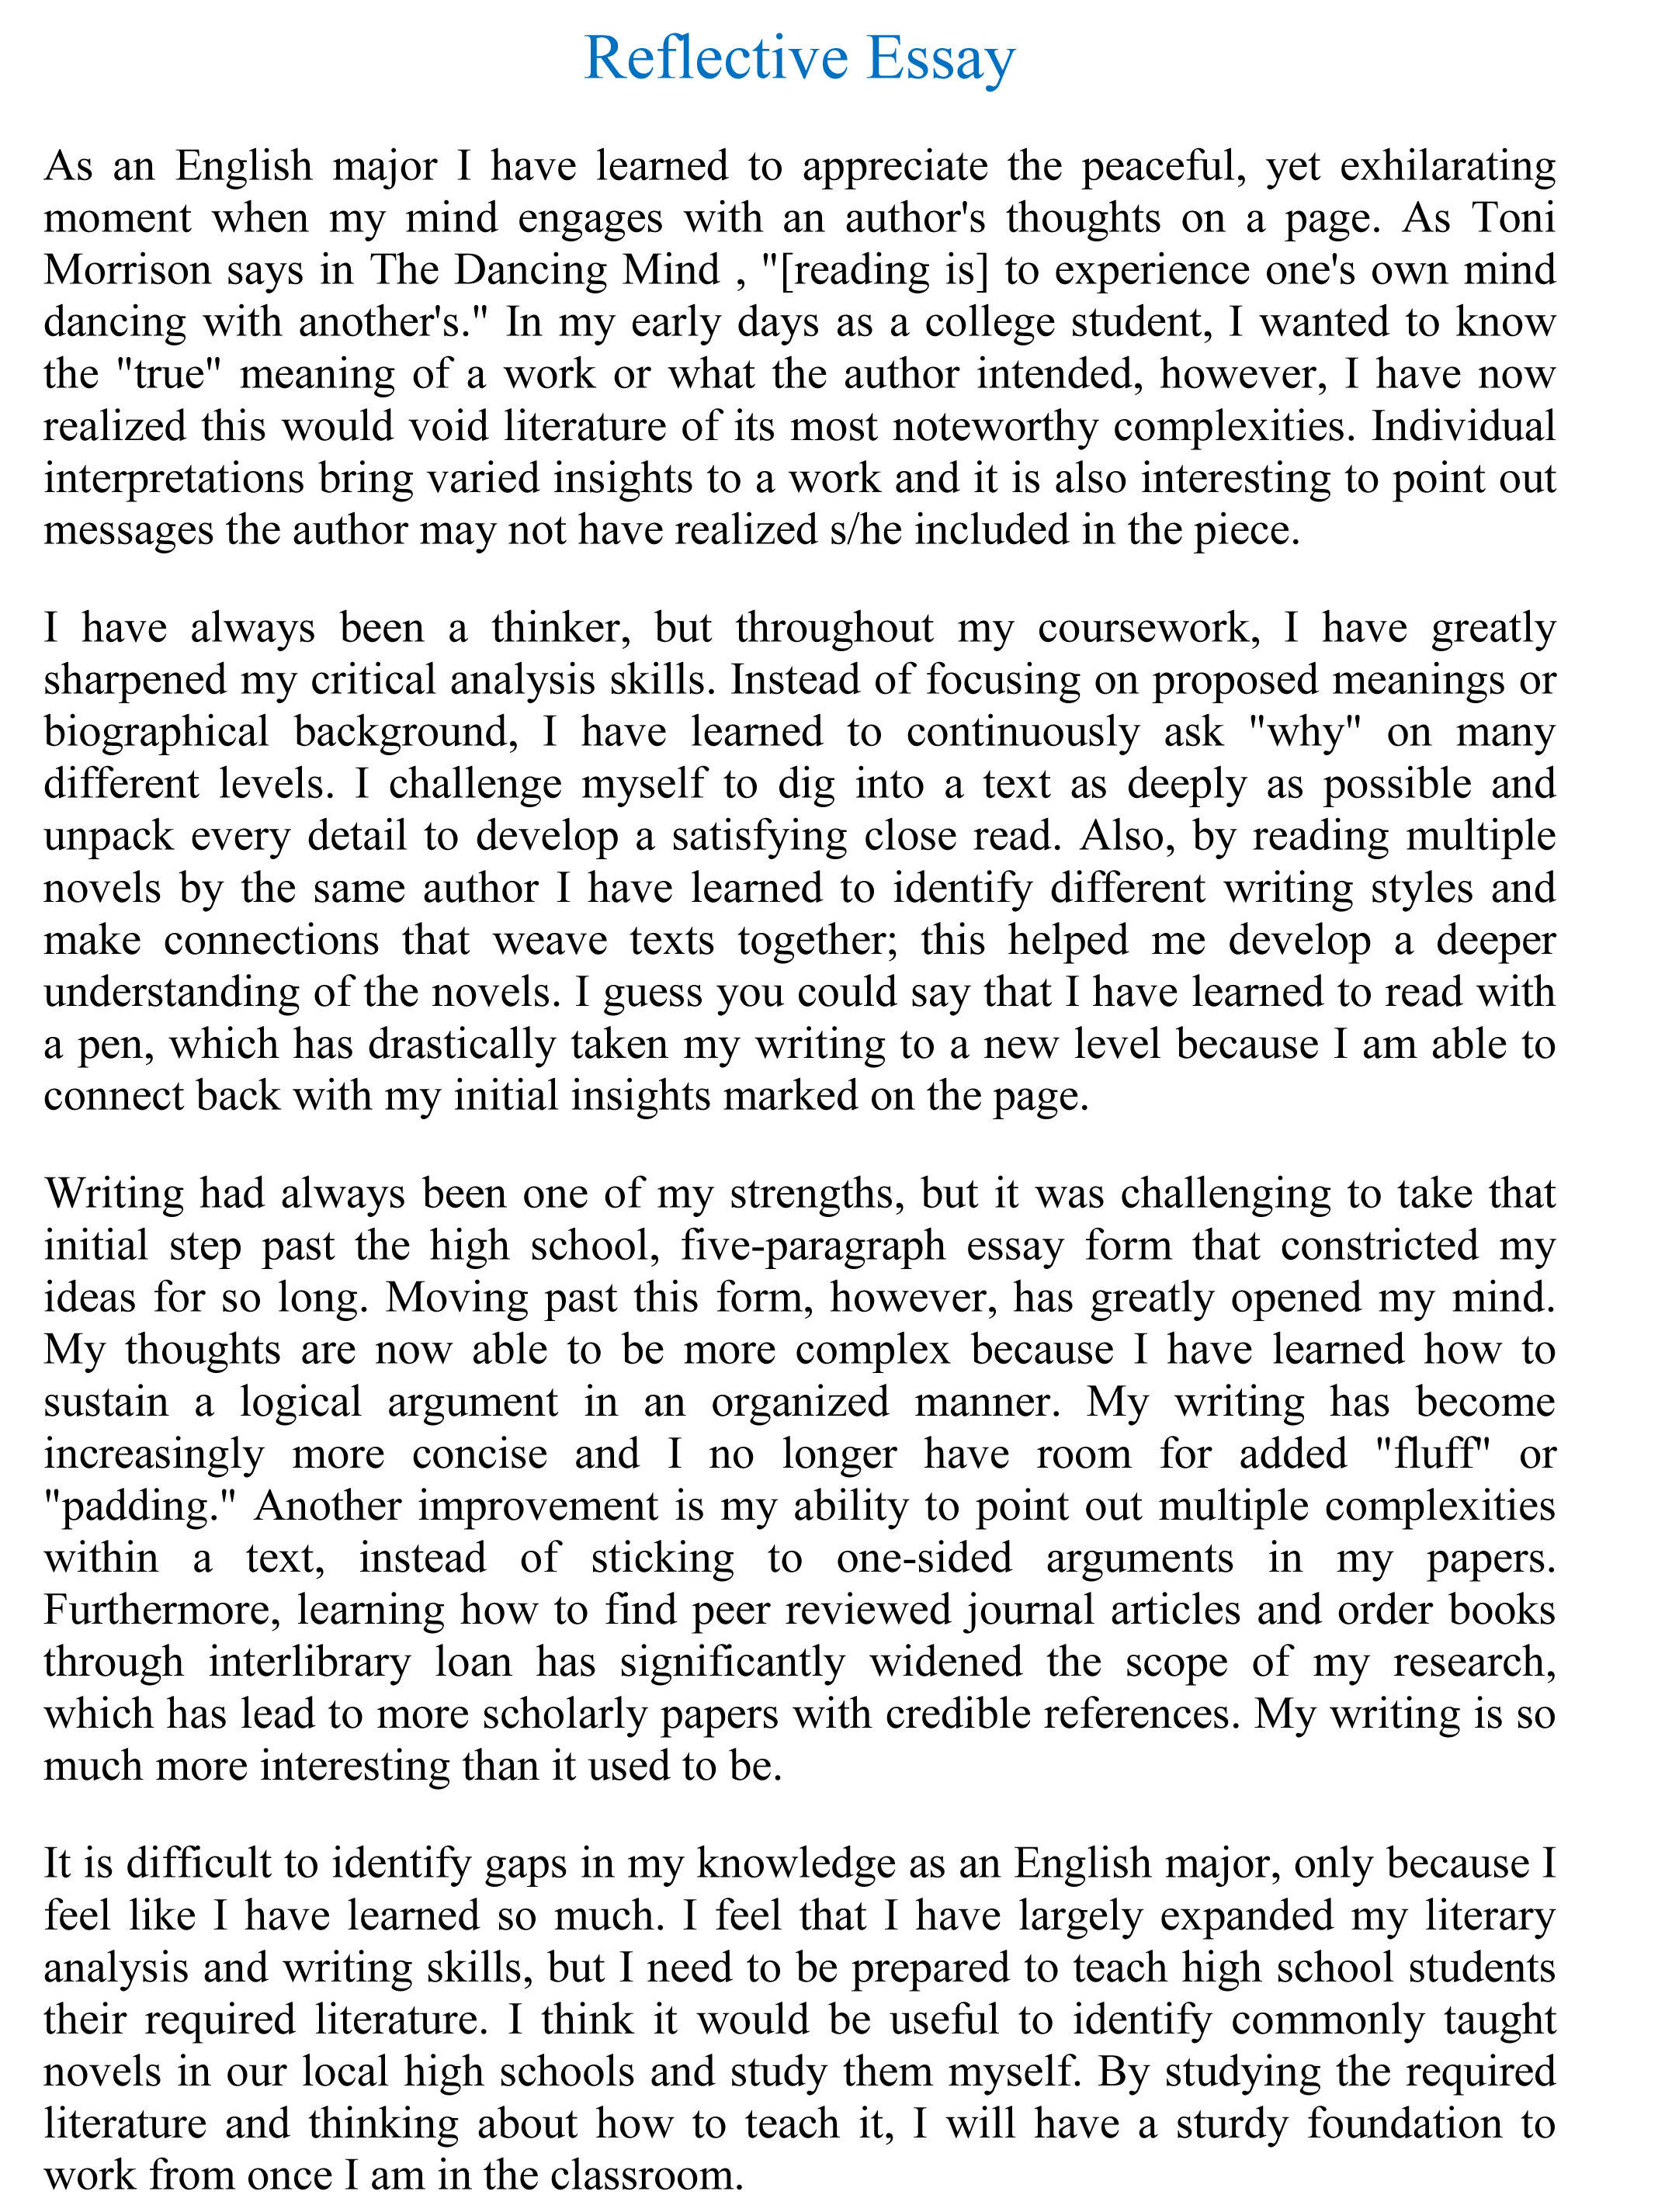 candide essays a angelou essays a angelou essays gxart a angelou  full essays to access full essays simply join our writing how to order essay essay writing